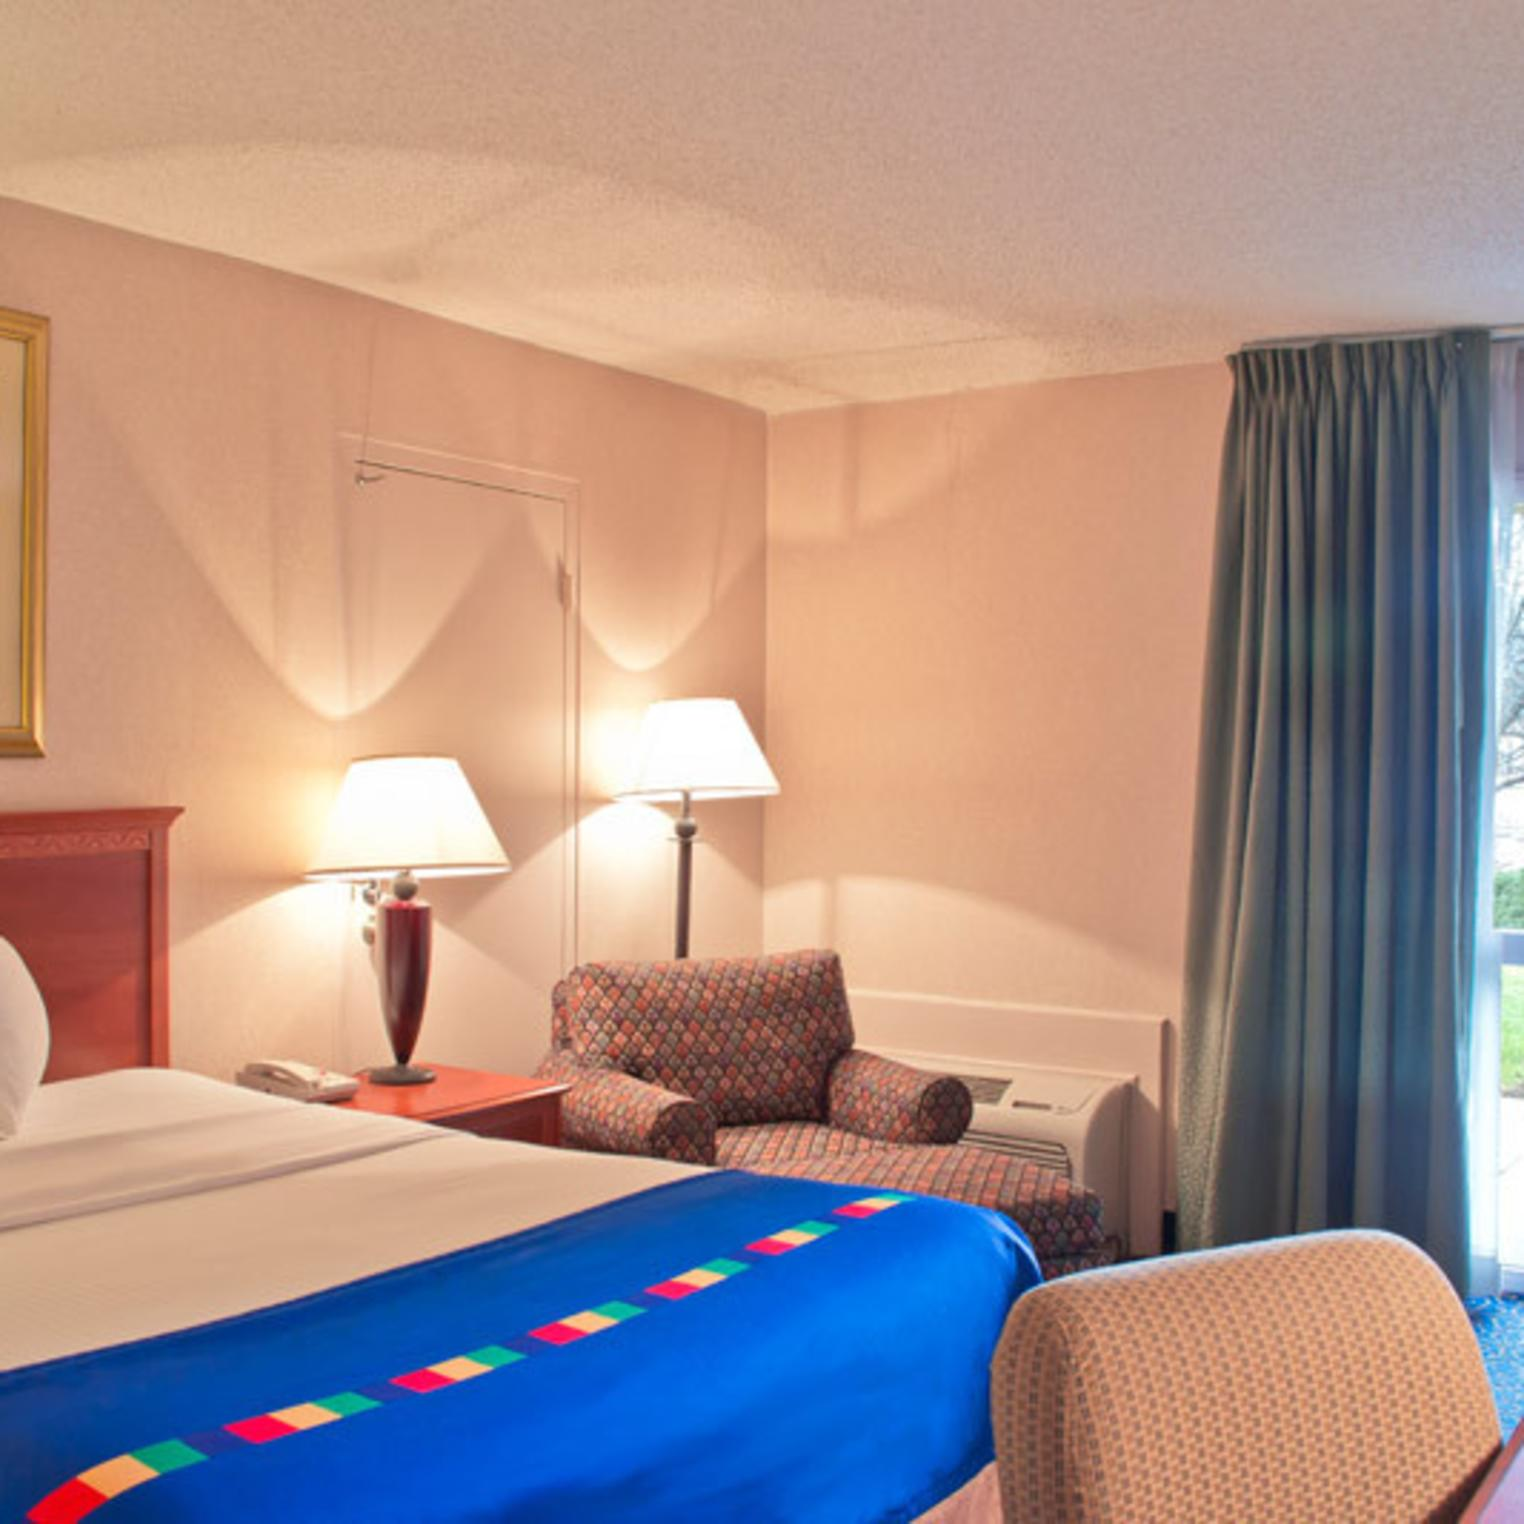 Comfortable rooms at the Park Inn.